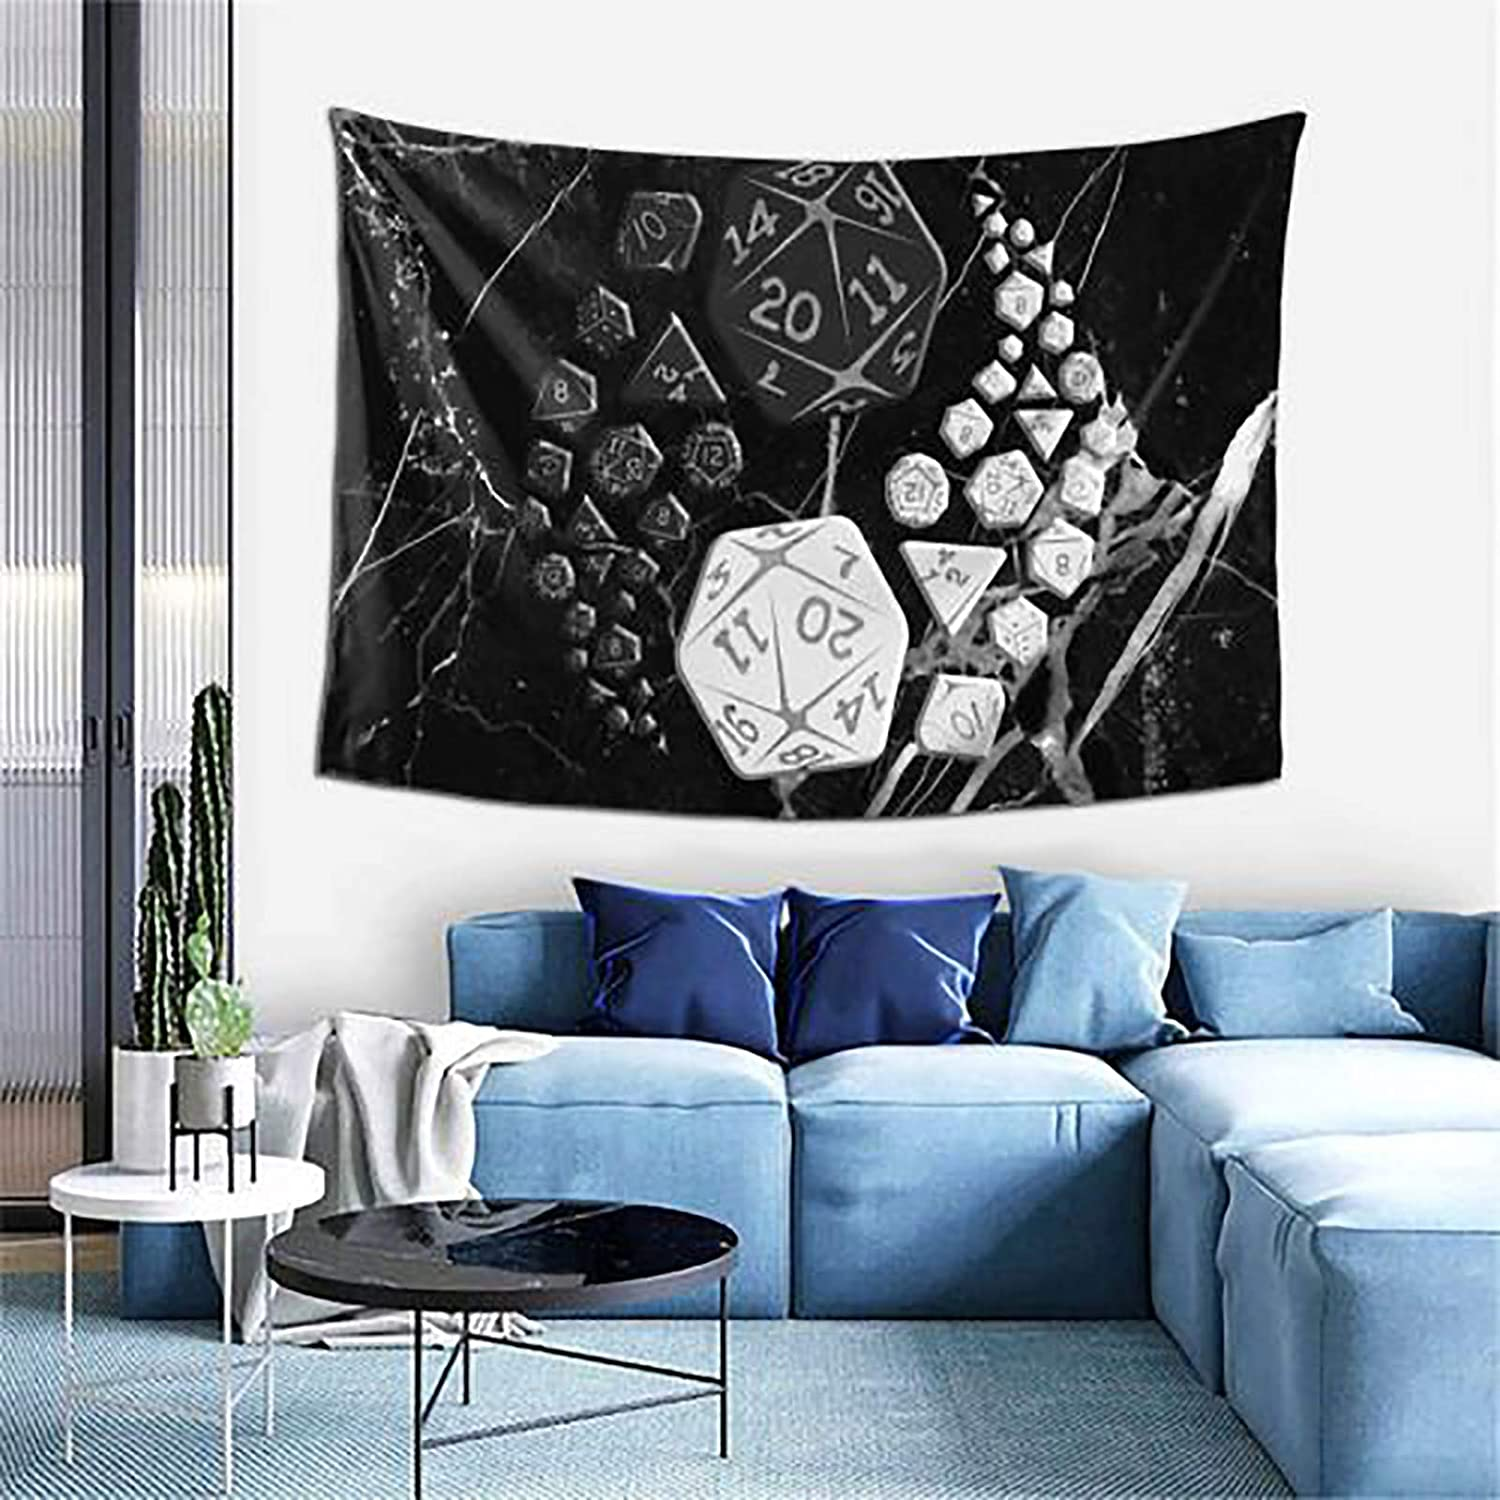 DungeonsDragonsYinYang Tapestry Wall Decor Soft Colorful Polyester Tapestries Decoration For Room 60X40 Inch